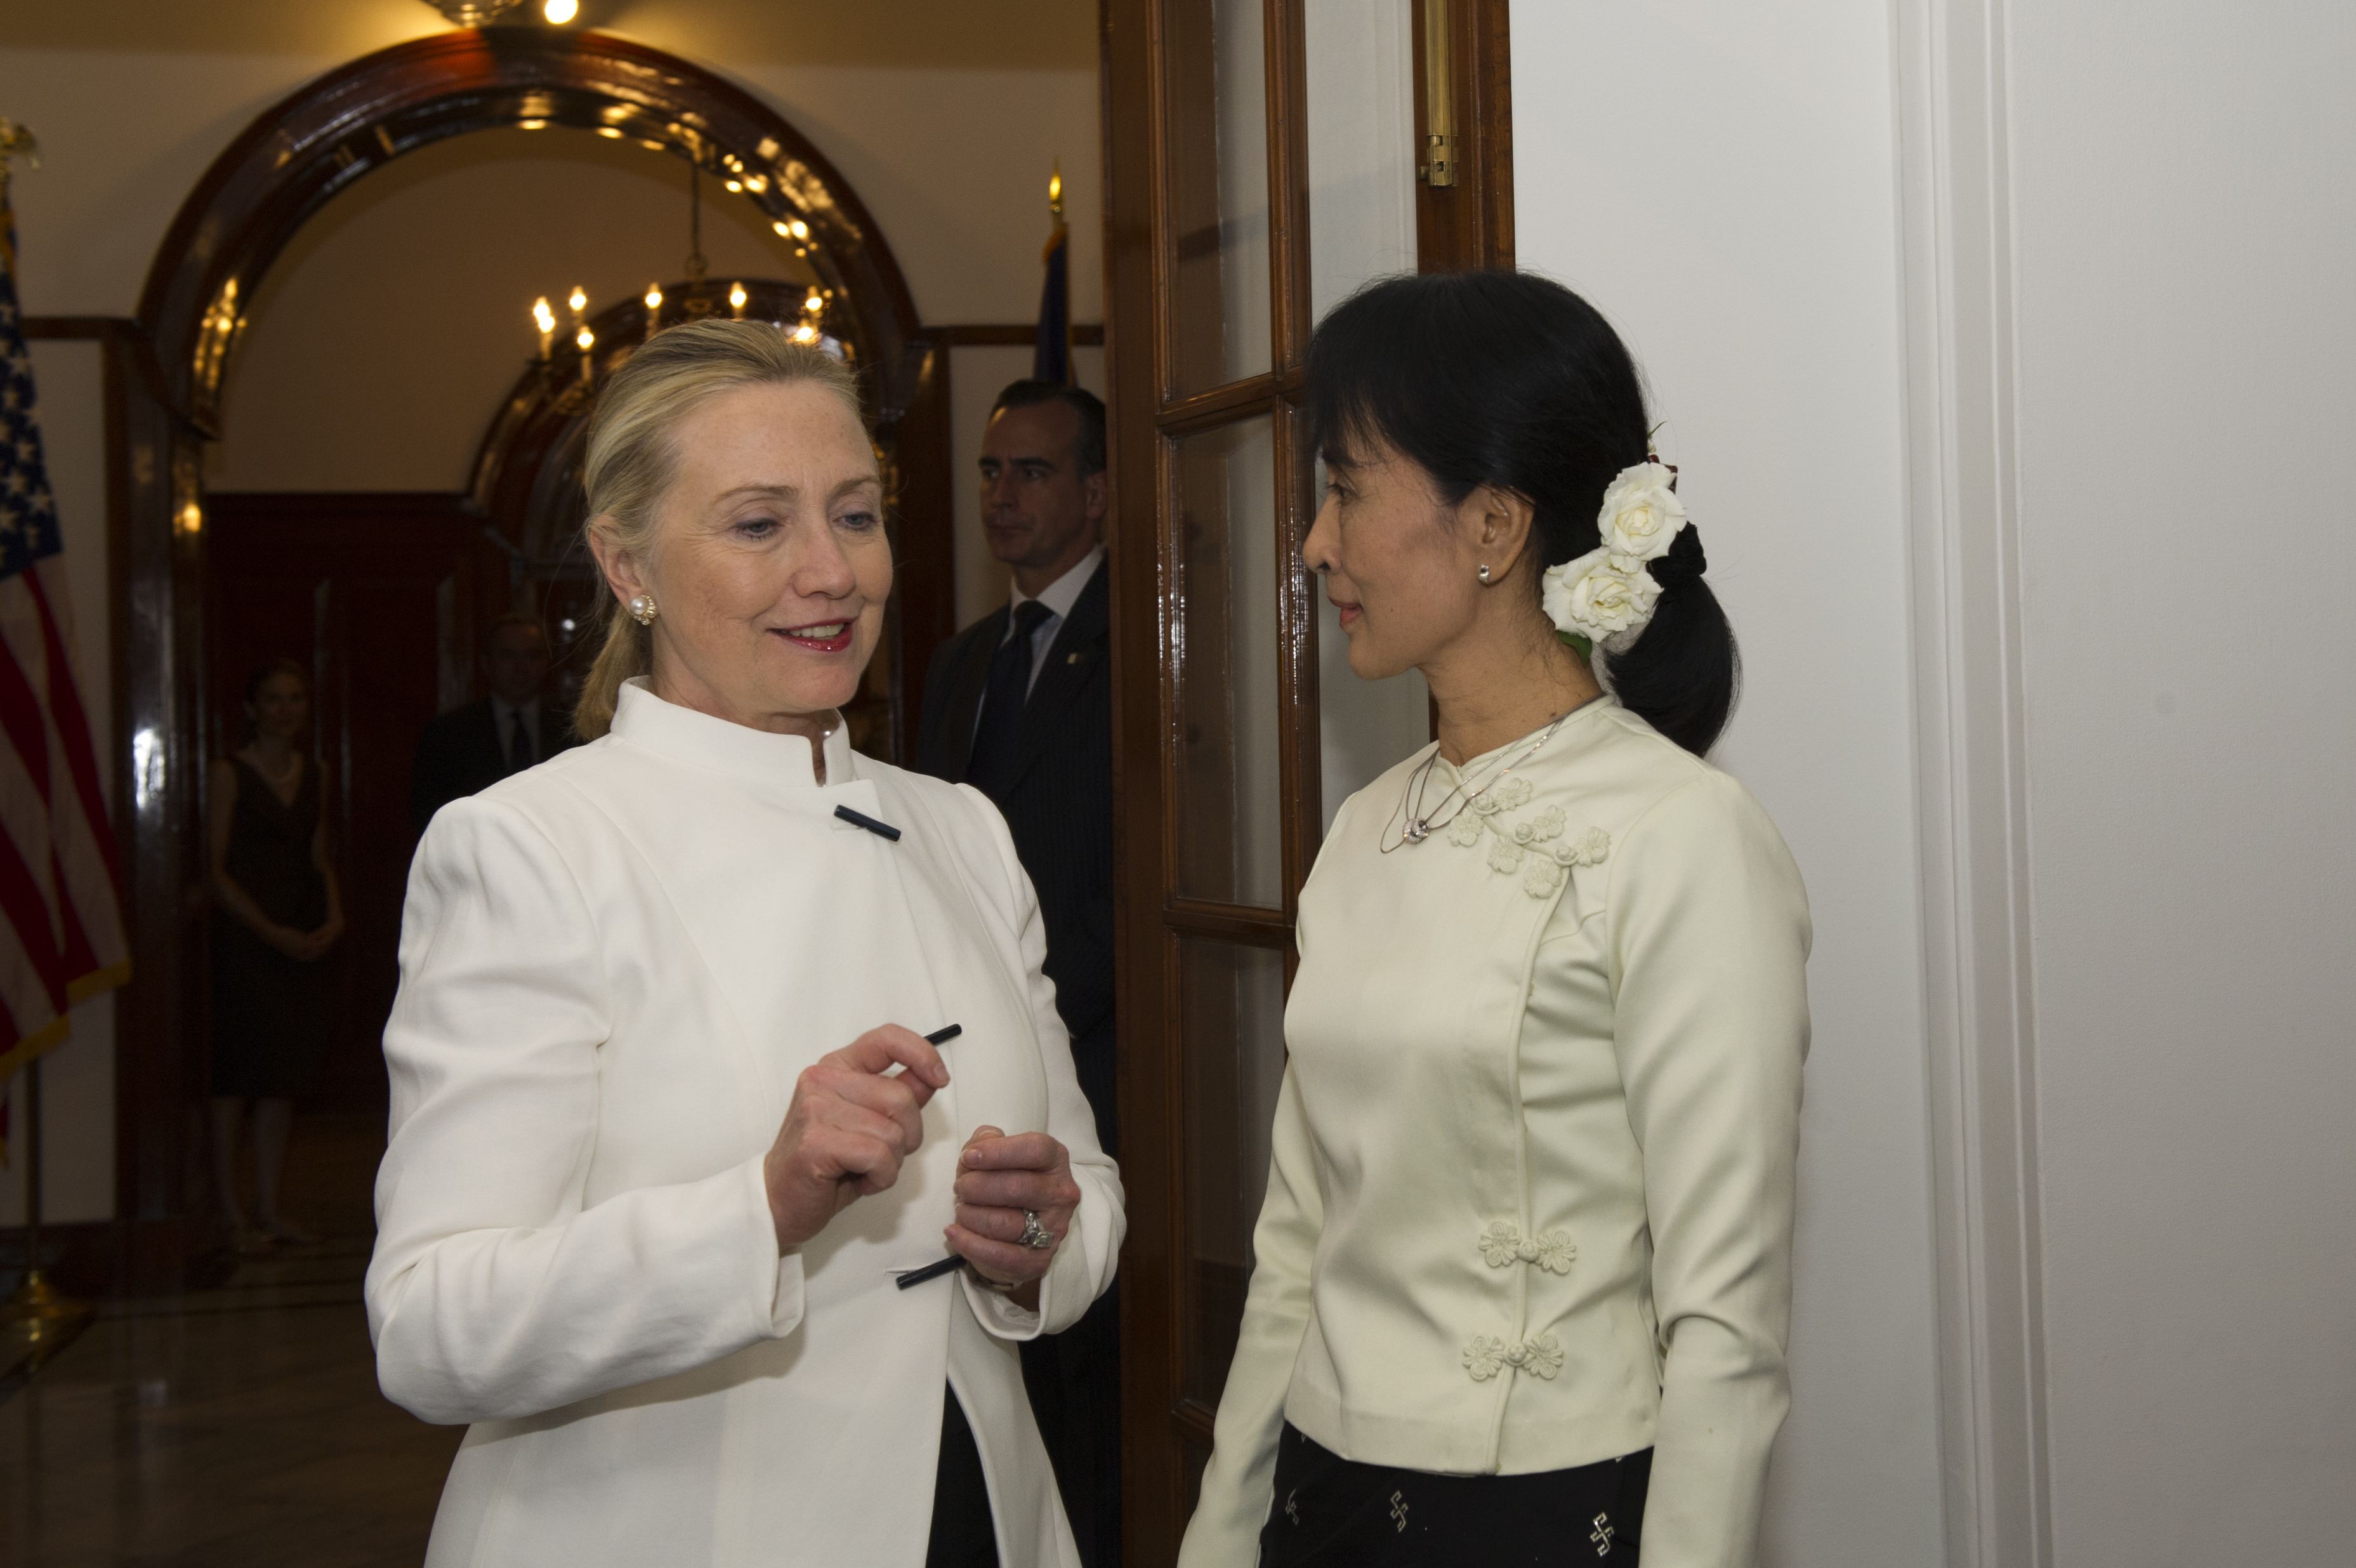 Secretary Clinton meeting with Burmese democracy leader Aung San Suu Kyi as part of her historic December 2011 visit to that country